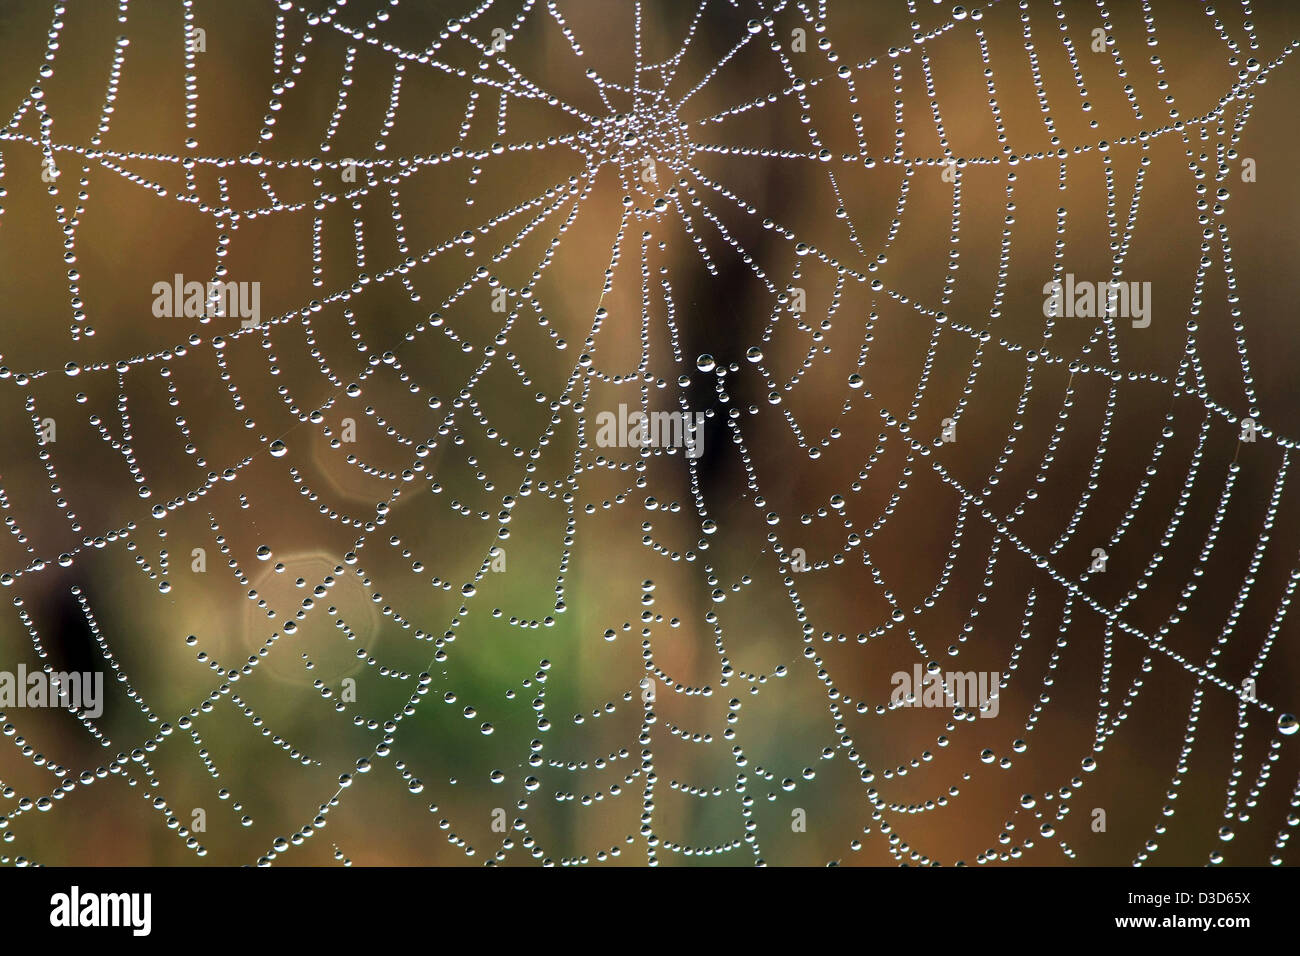 Web in dew - Stock Image